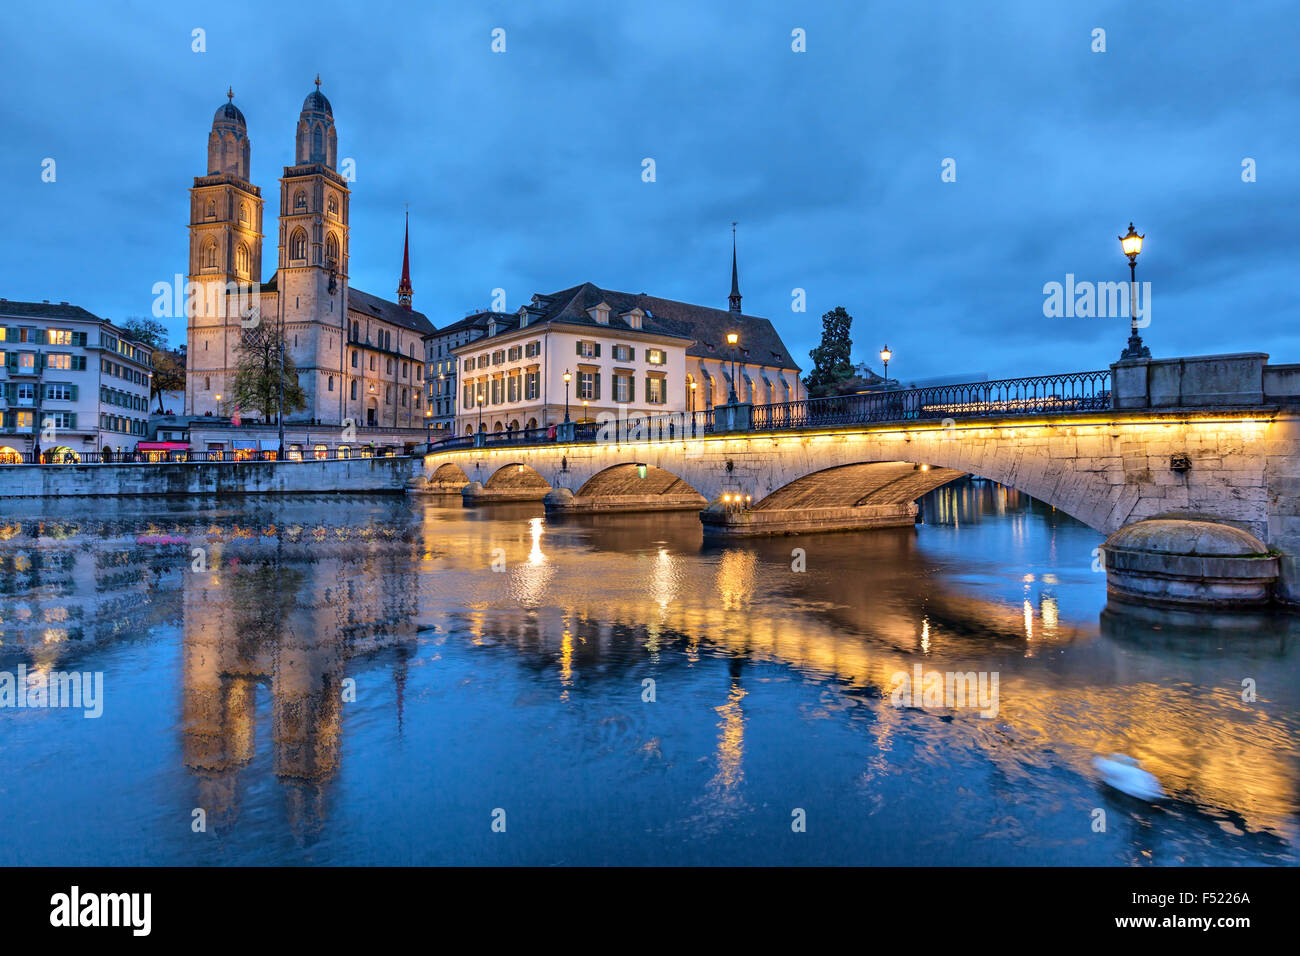 Munsterbrucke and Grossmunster church reflecting in river Limmat, Zurich, Switzerland - Stock Image